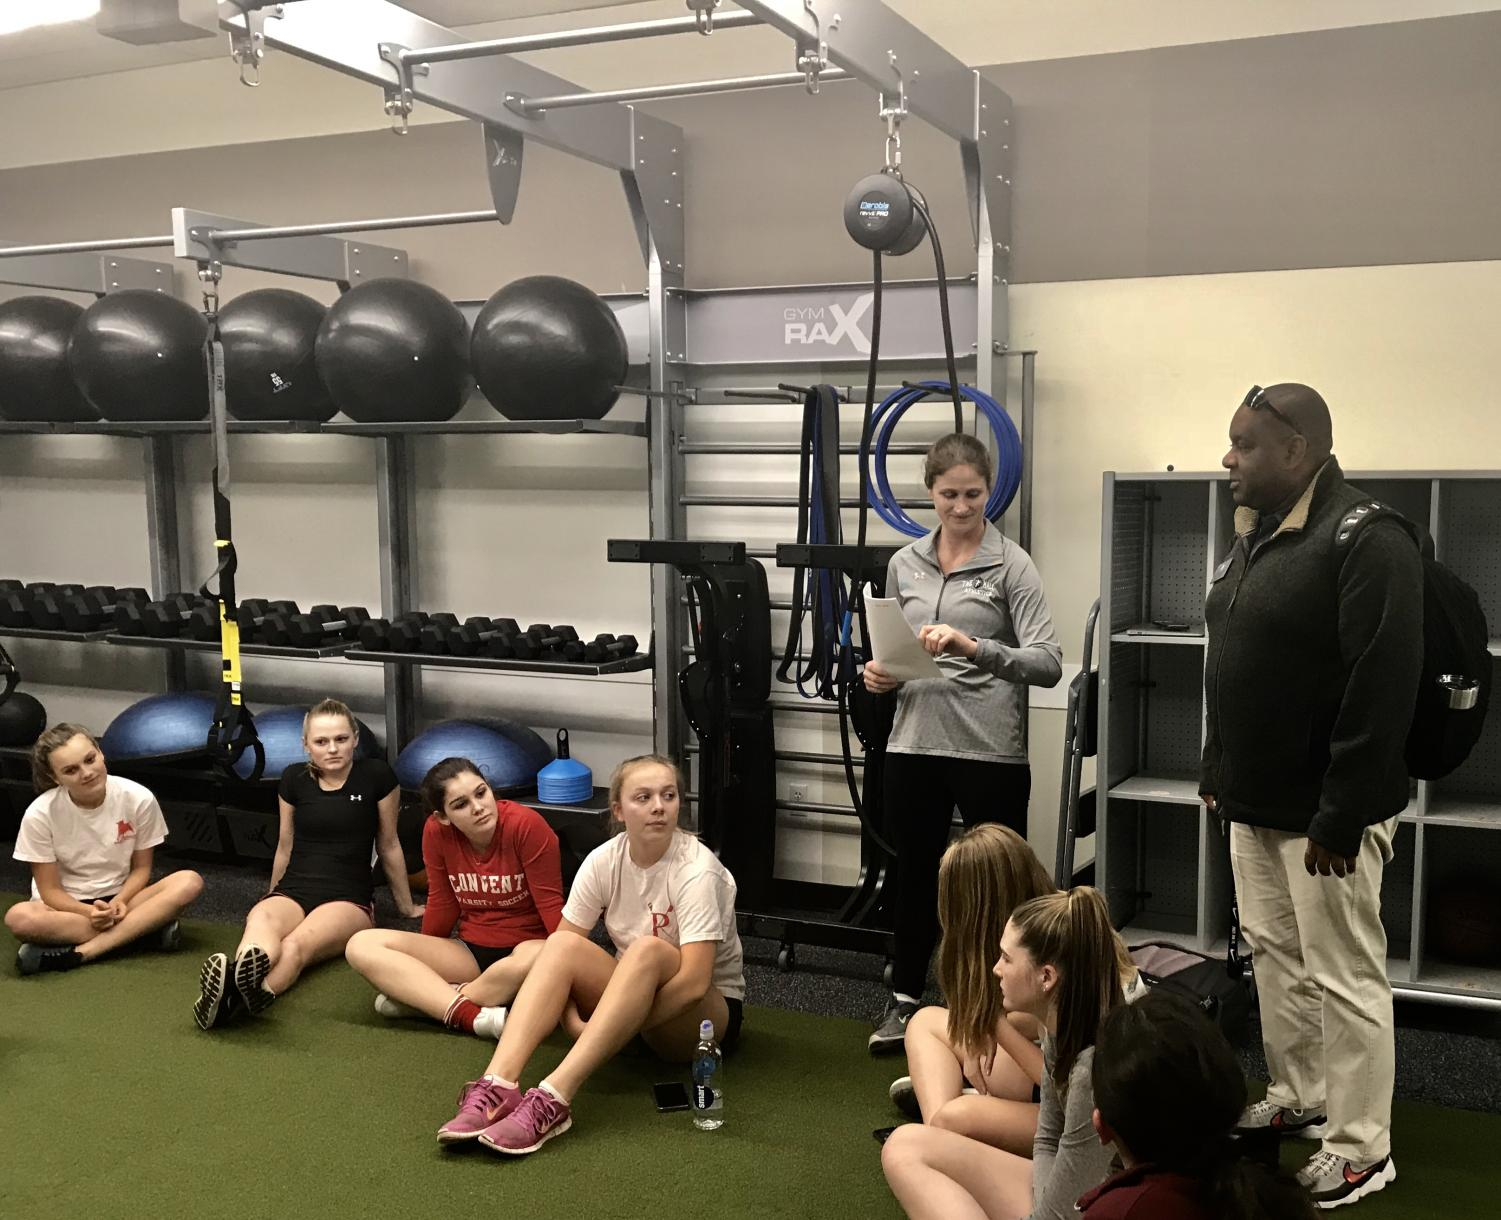 Director of Athletics Anthony Thomas stops by to welcome the girls to the start of the spring season. The first soccer practice will be on Feb. 5.